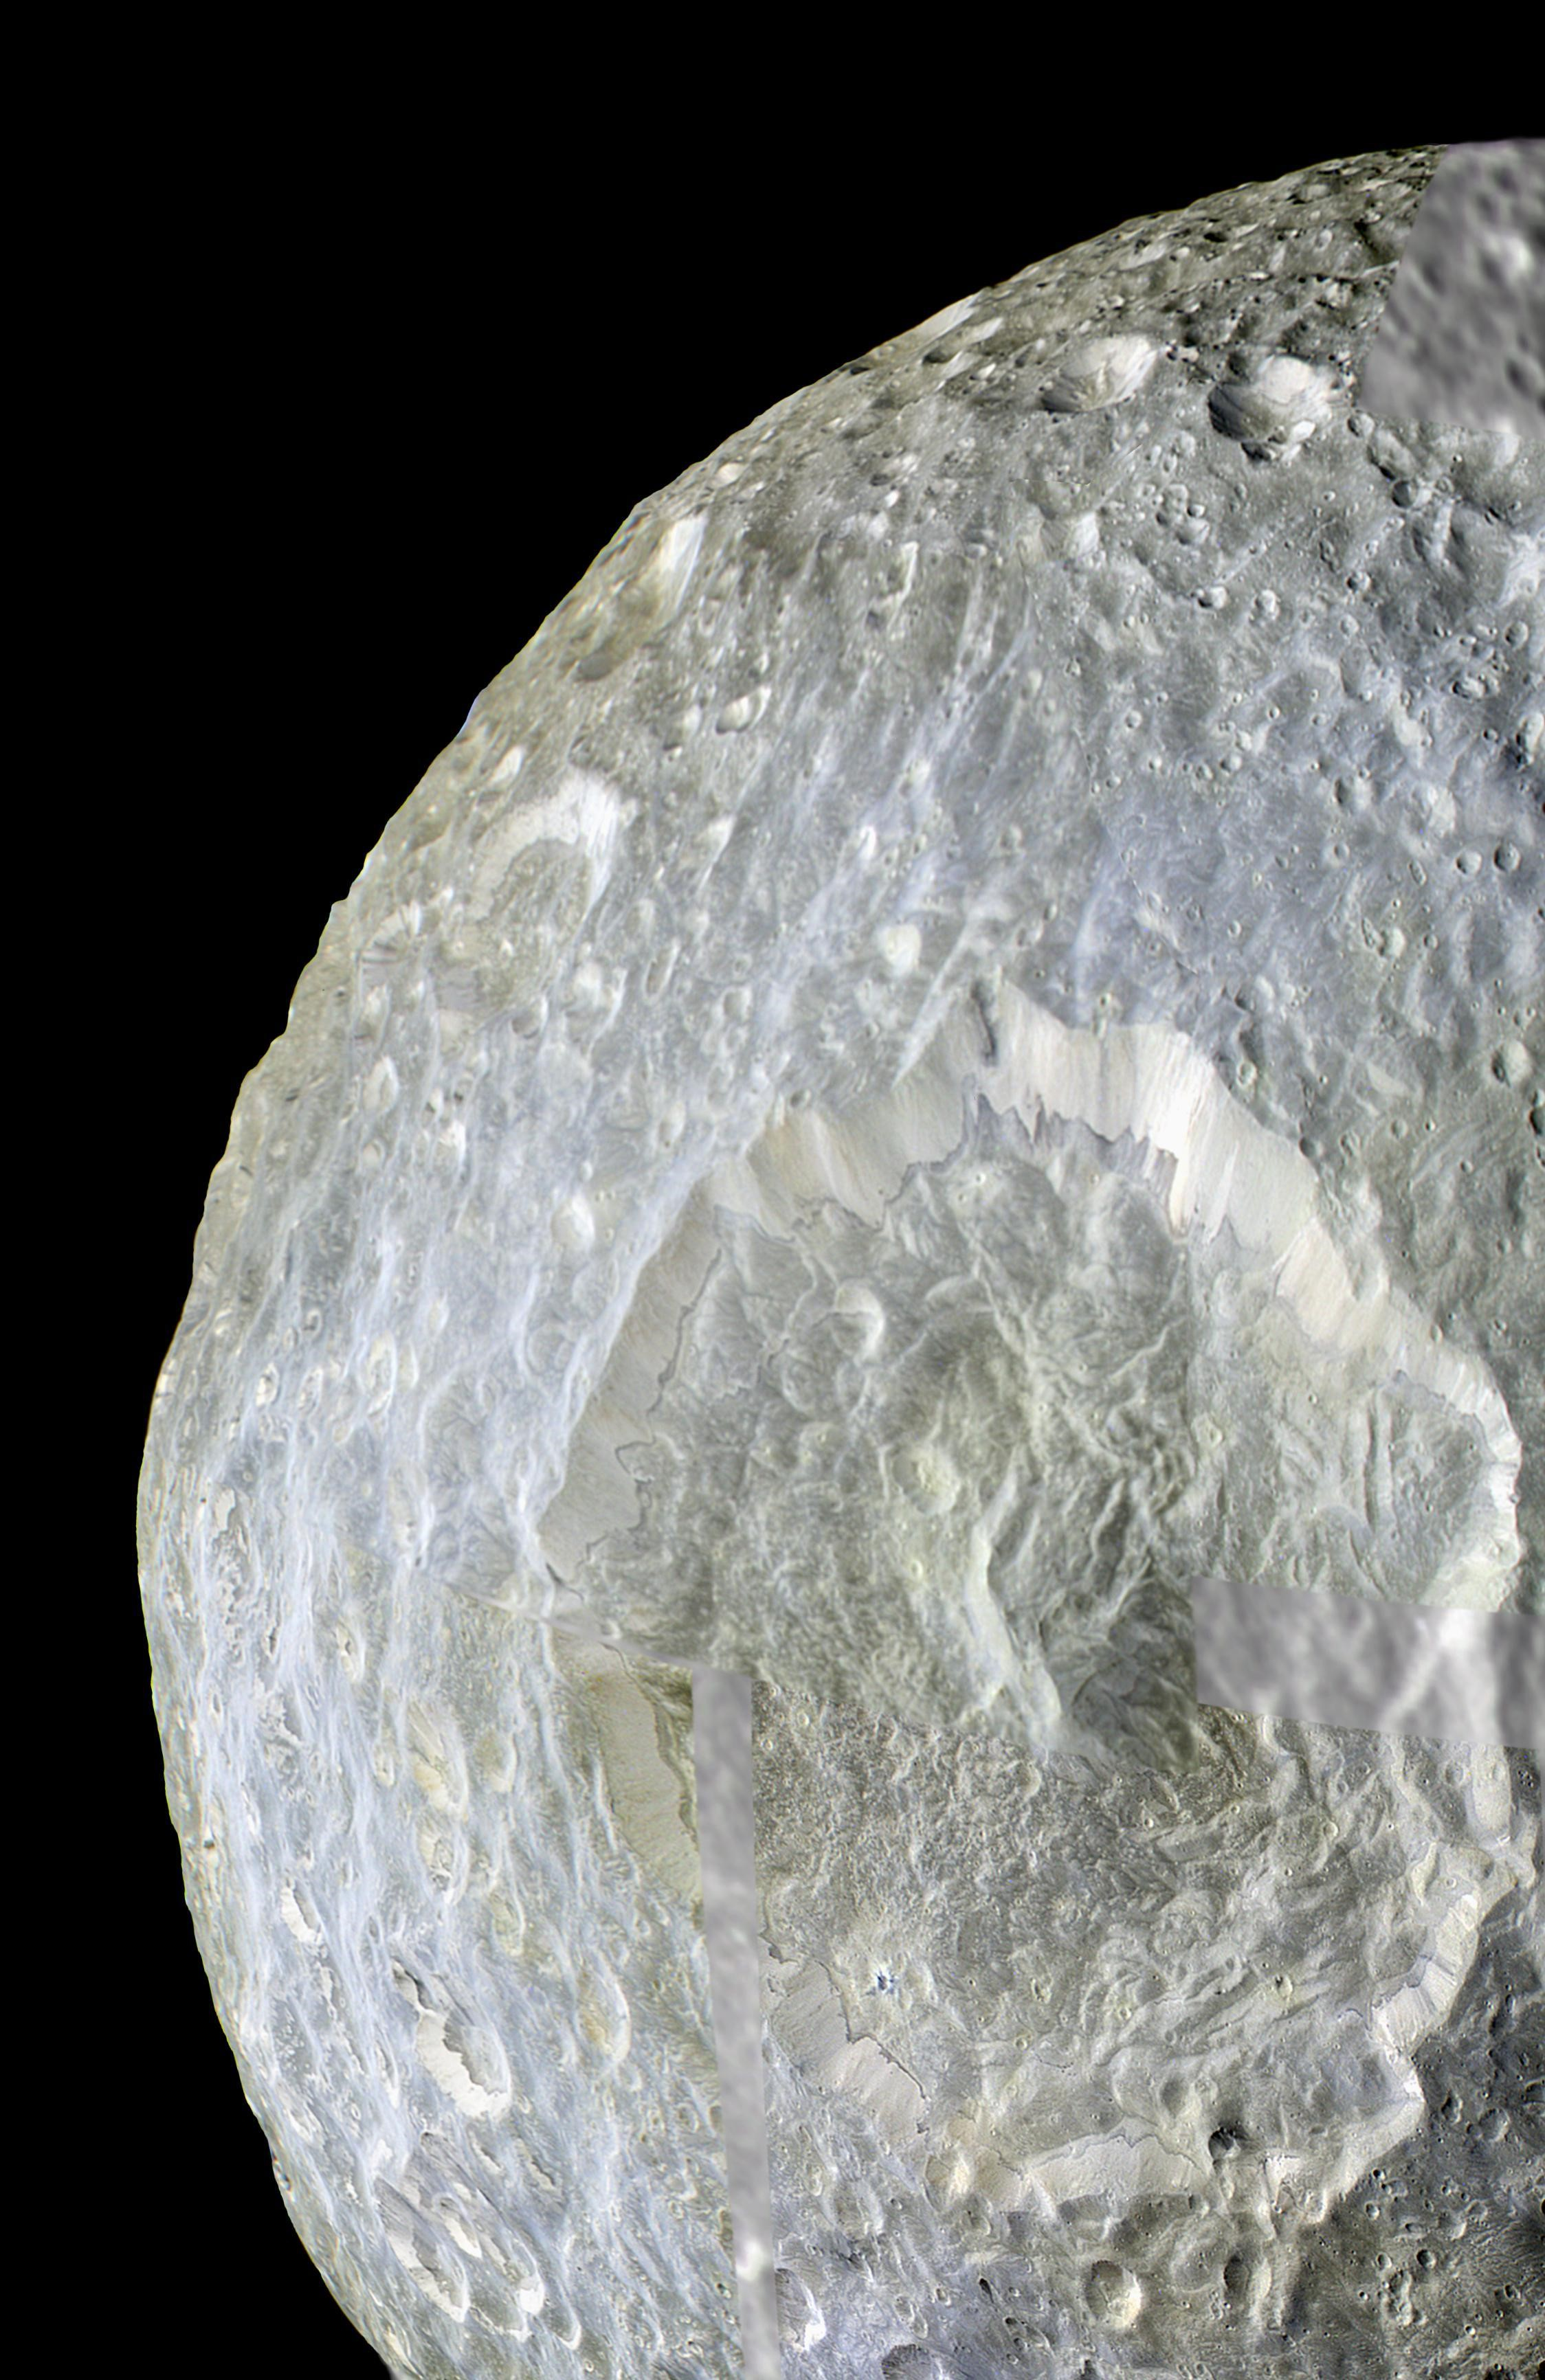 surface-mimas-cassini-nasa-jpl-ssi.jpg